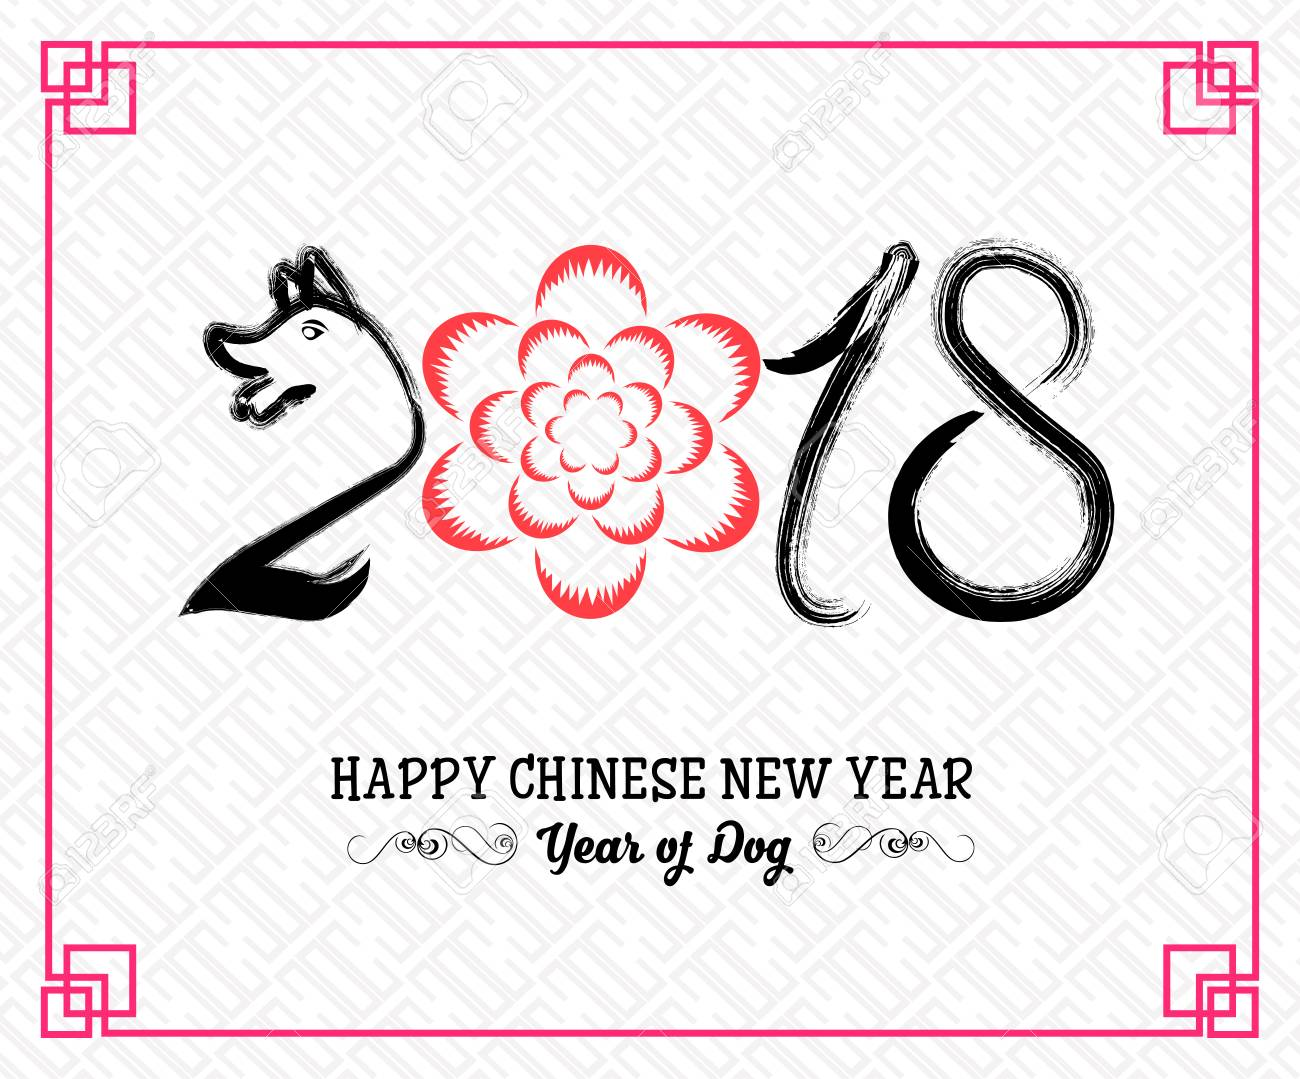 happy chinese new year 2018 year of the dog concept design with pink border vector illustration